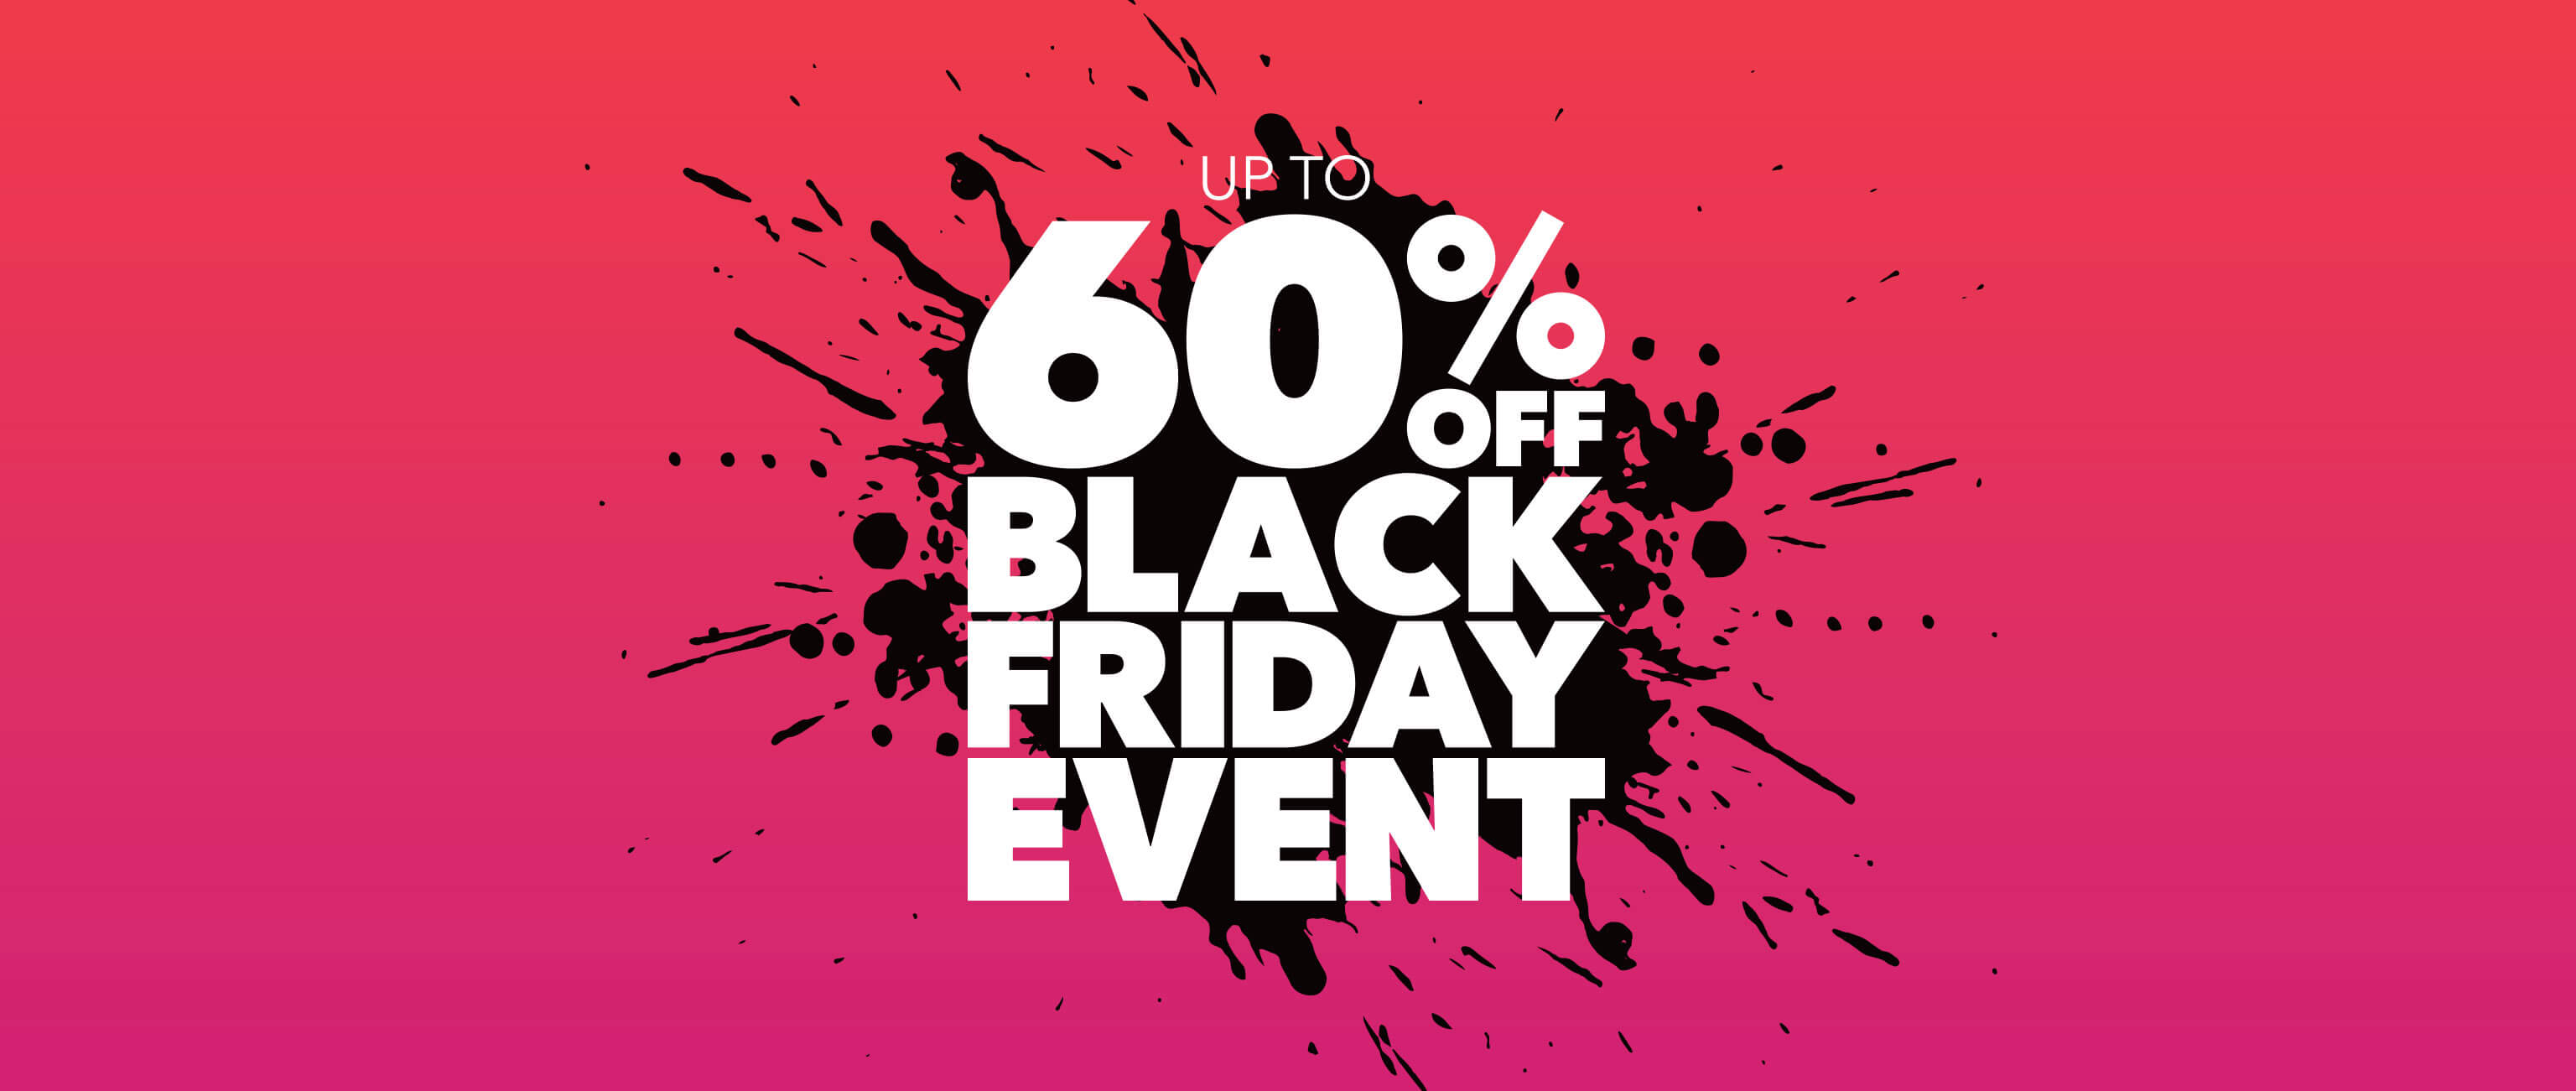 homepage - carousel - 60% off black friday event - flash sale